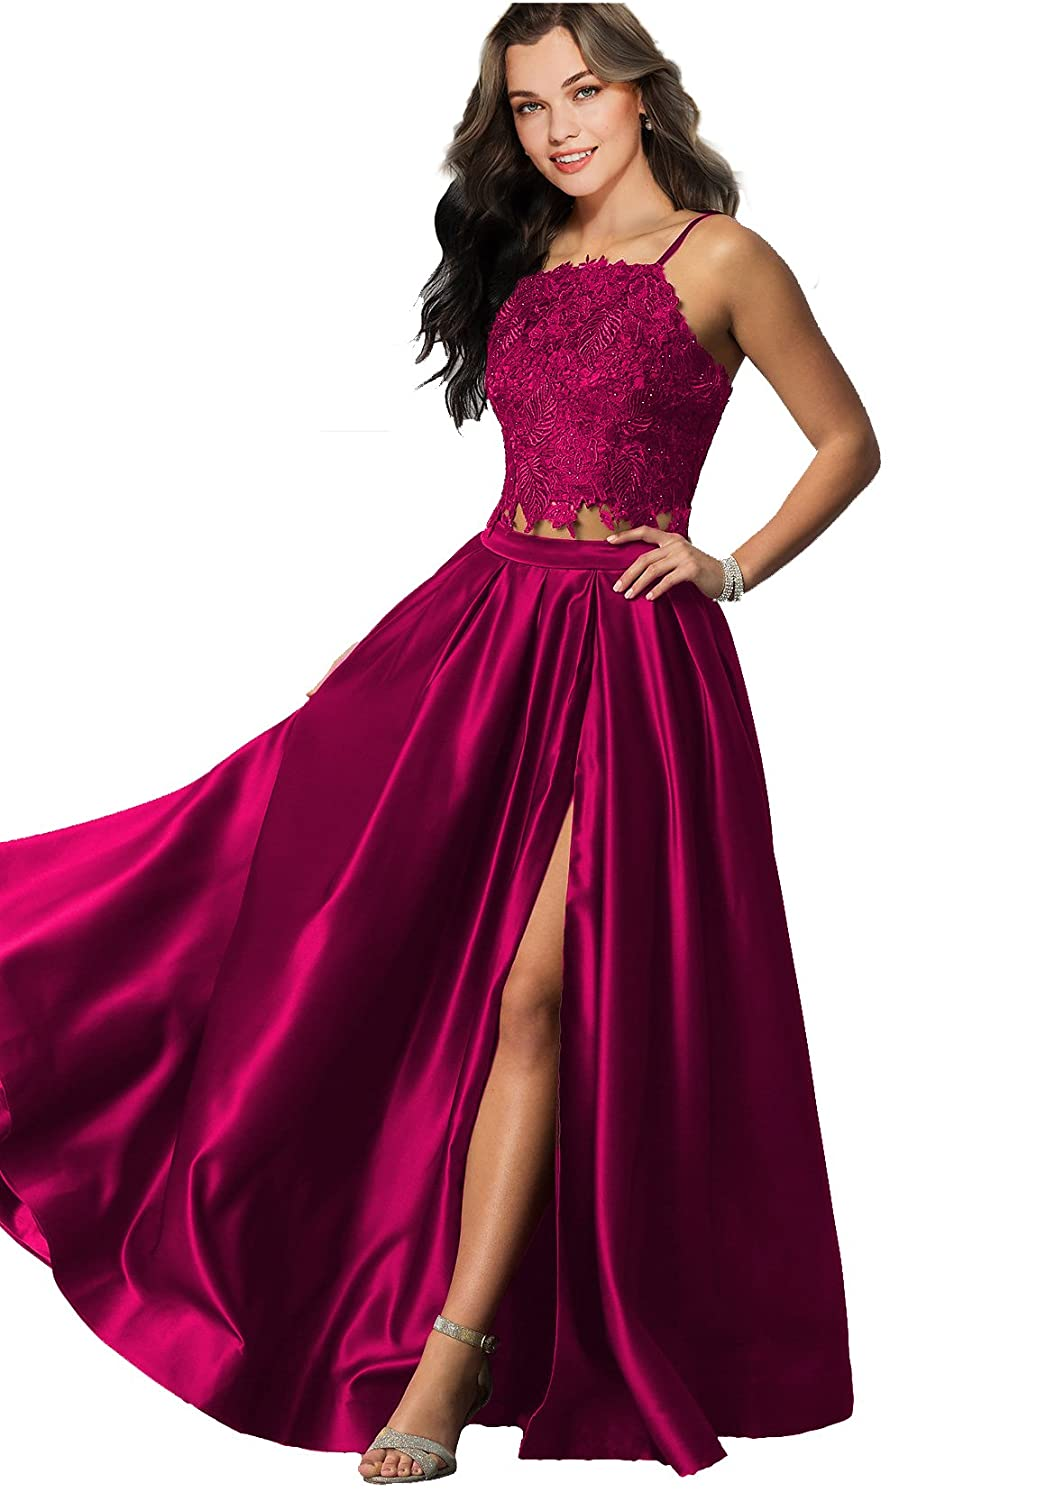 Lily Wedding Womens Halter 2 Piece Prom Dresses 2019 Long Sleeveless Satin Evening Formal Gown with Slit